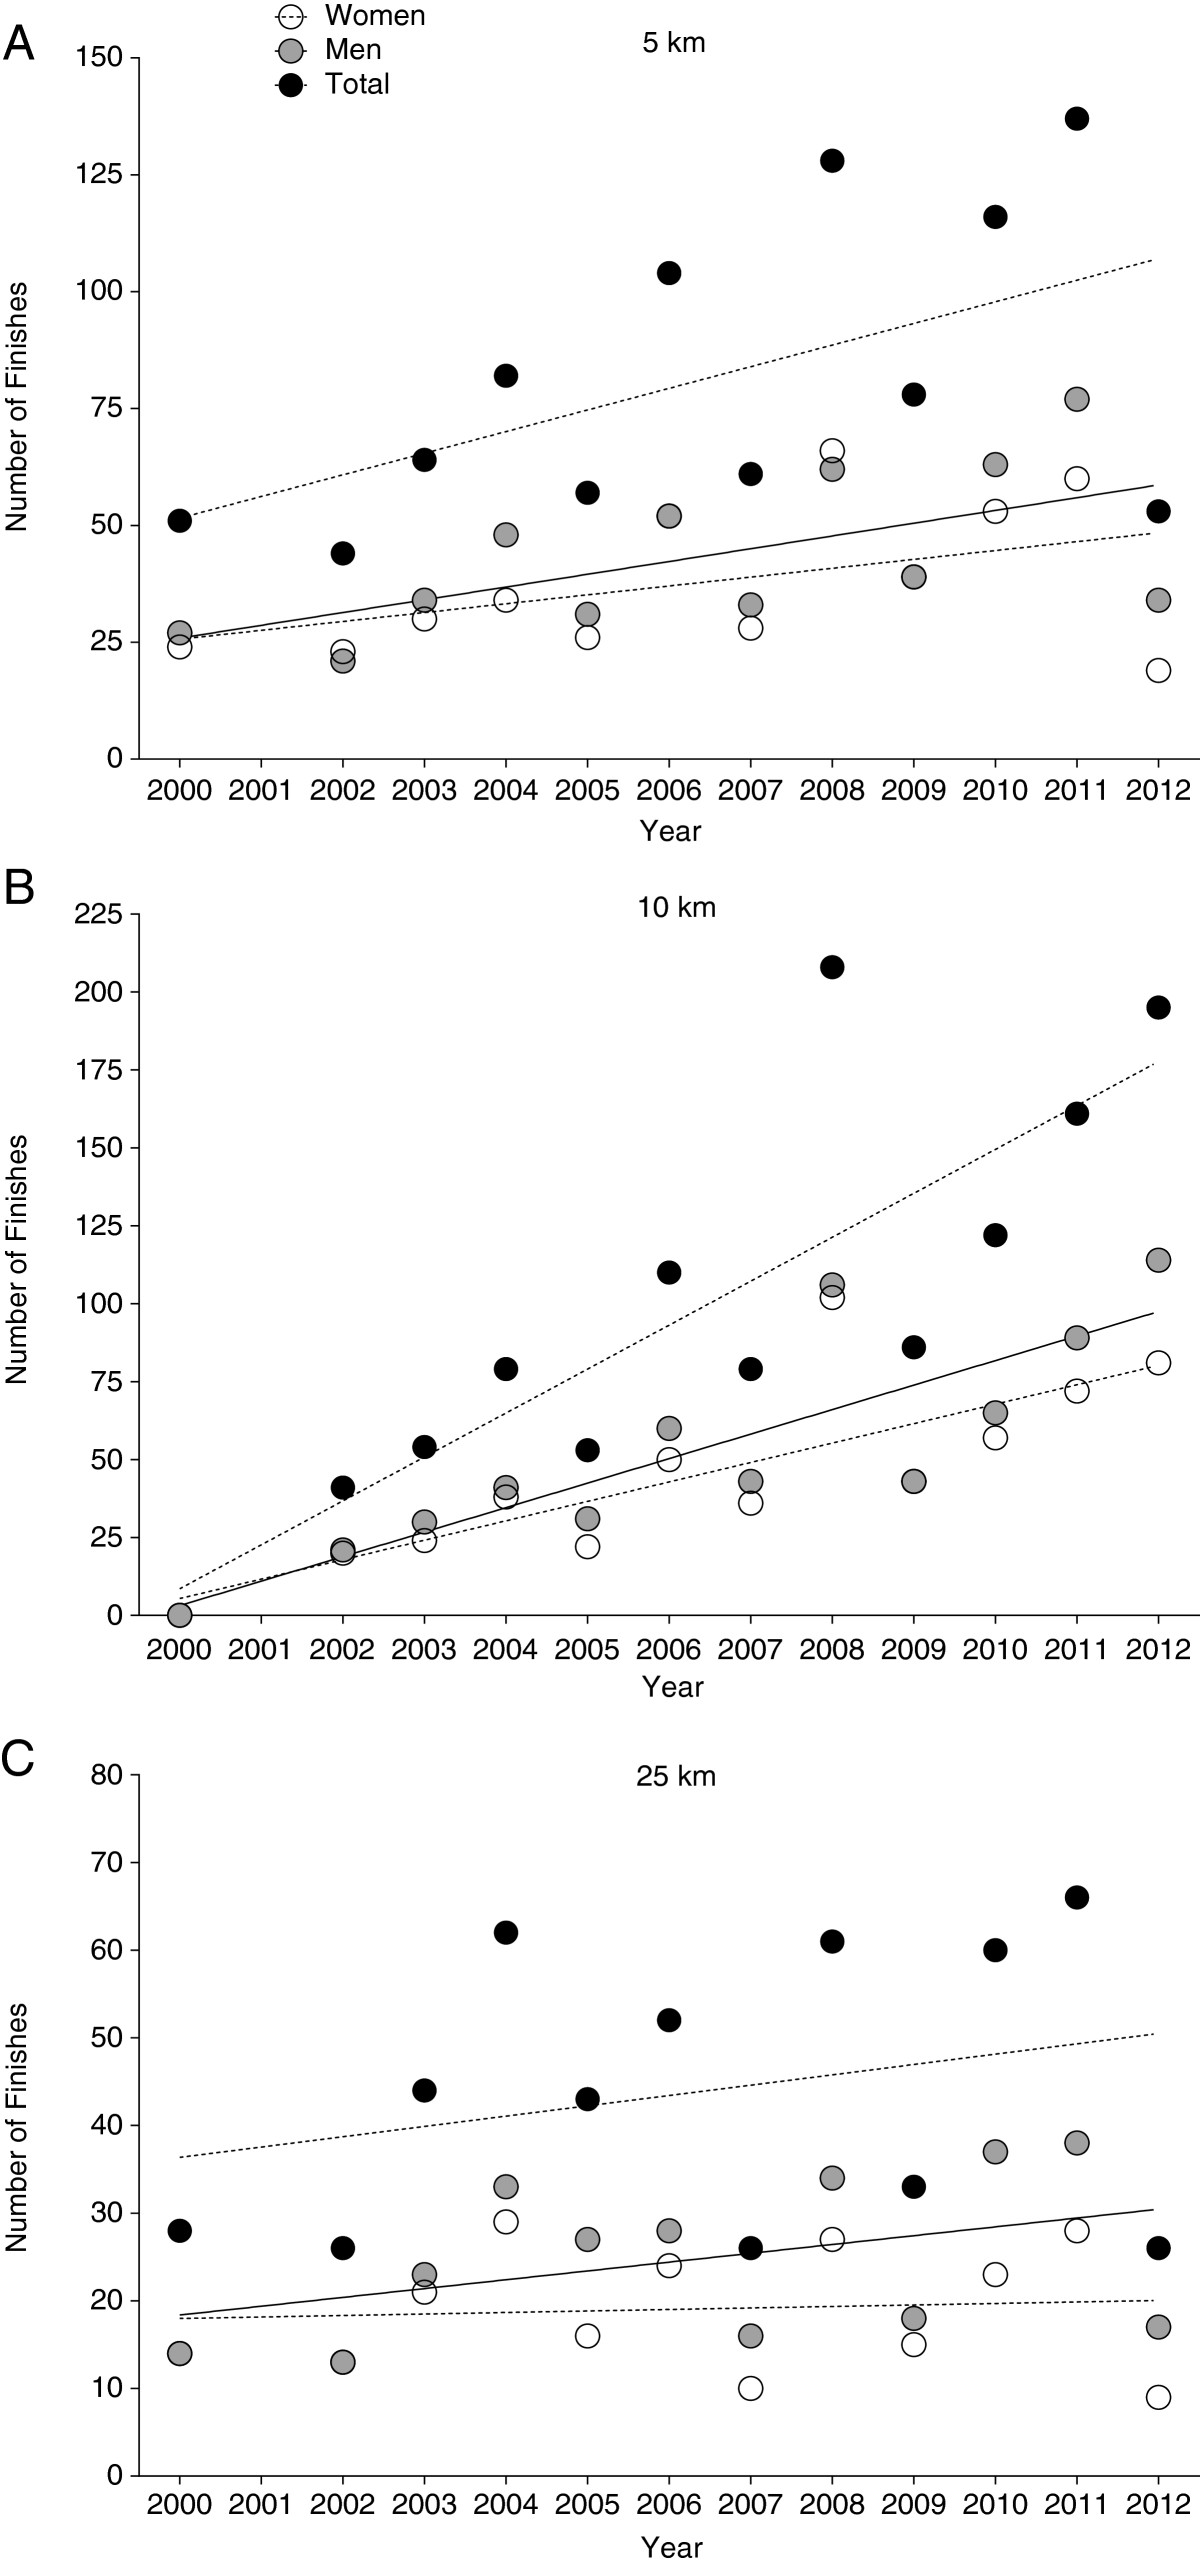 Analysis of swimming performance in FINA World Cup long